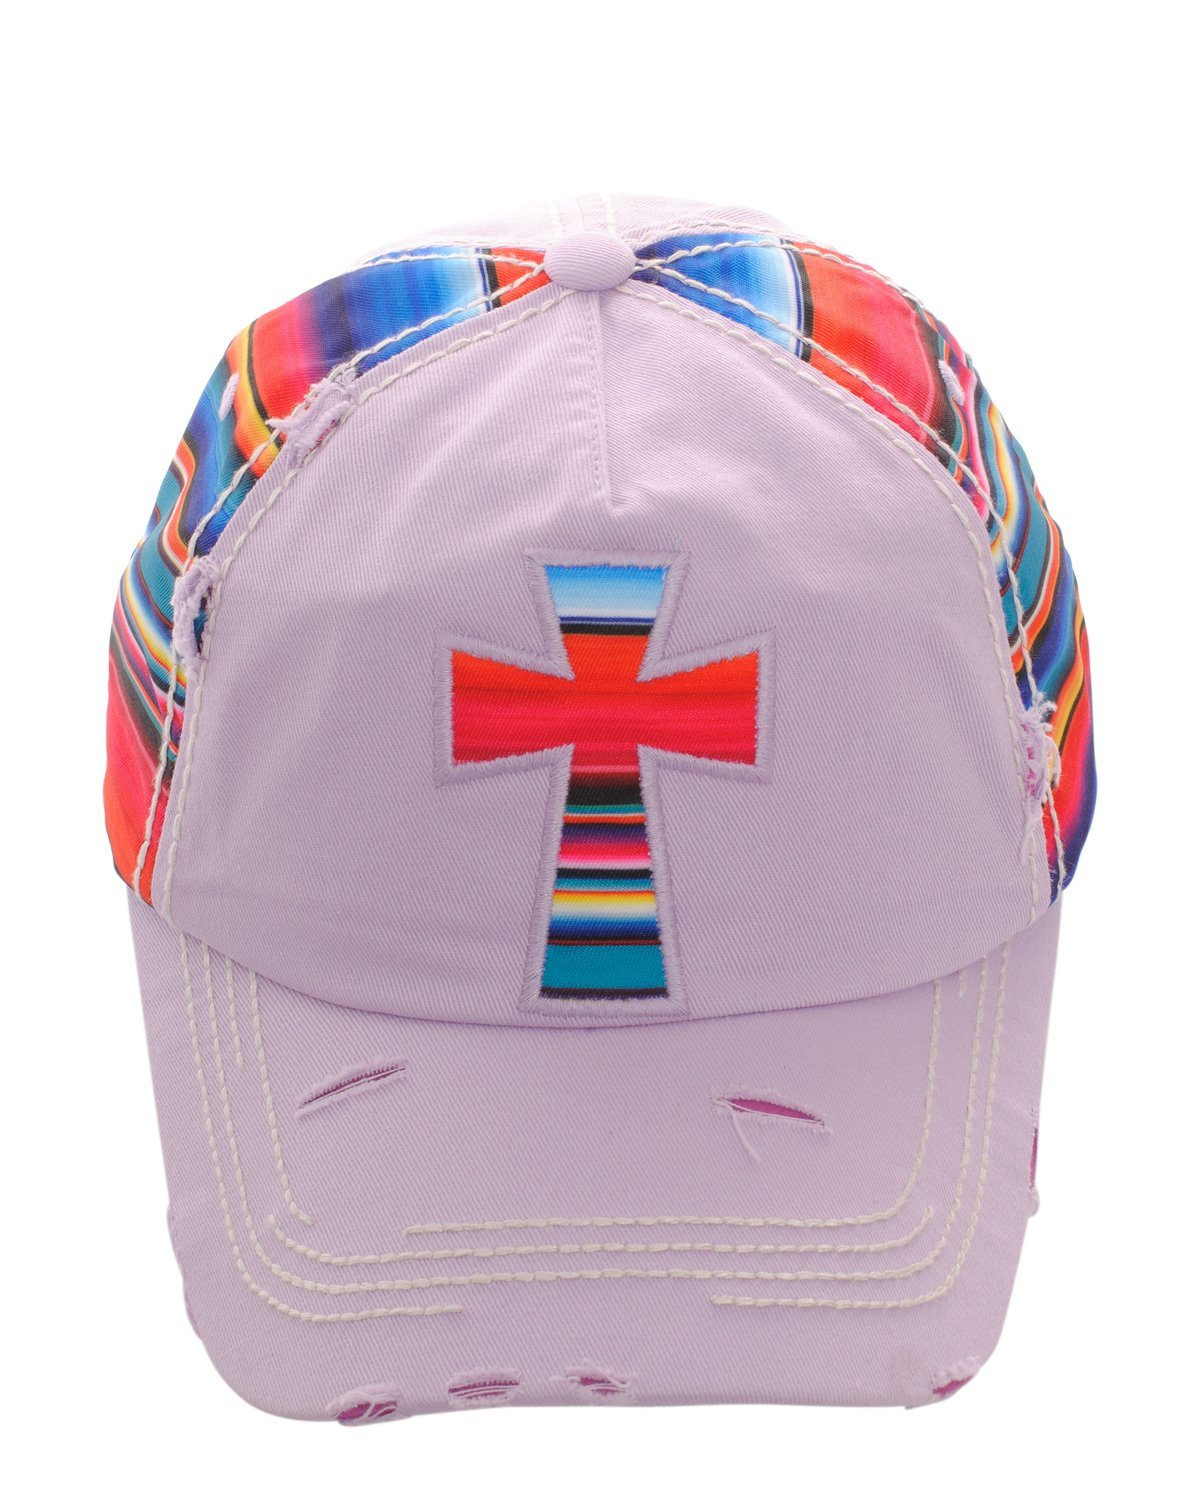 Distressed Serape Striped Cross or Cactus Baseball Cap Hat Adjustable (Light Pur